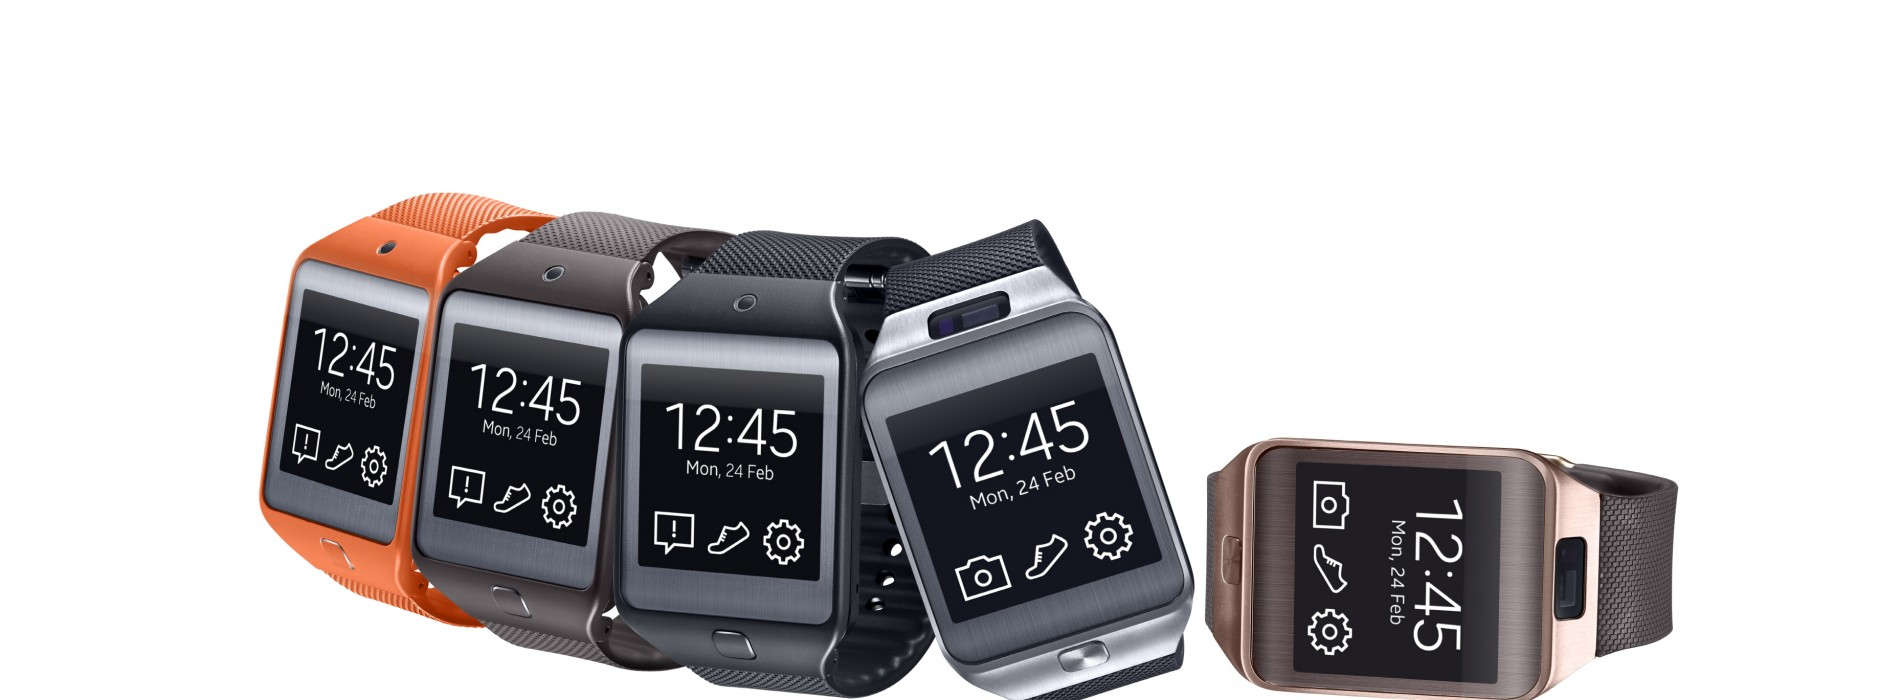 Samsung announces Gear 2 and Gear 2 Neo ahead of MWC